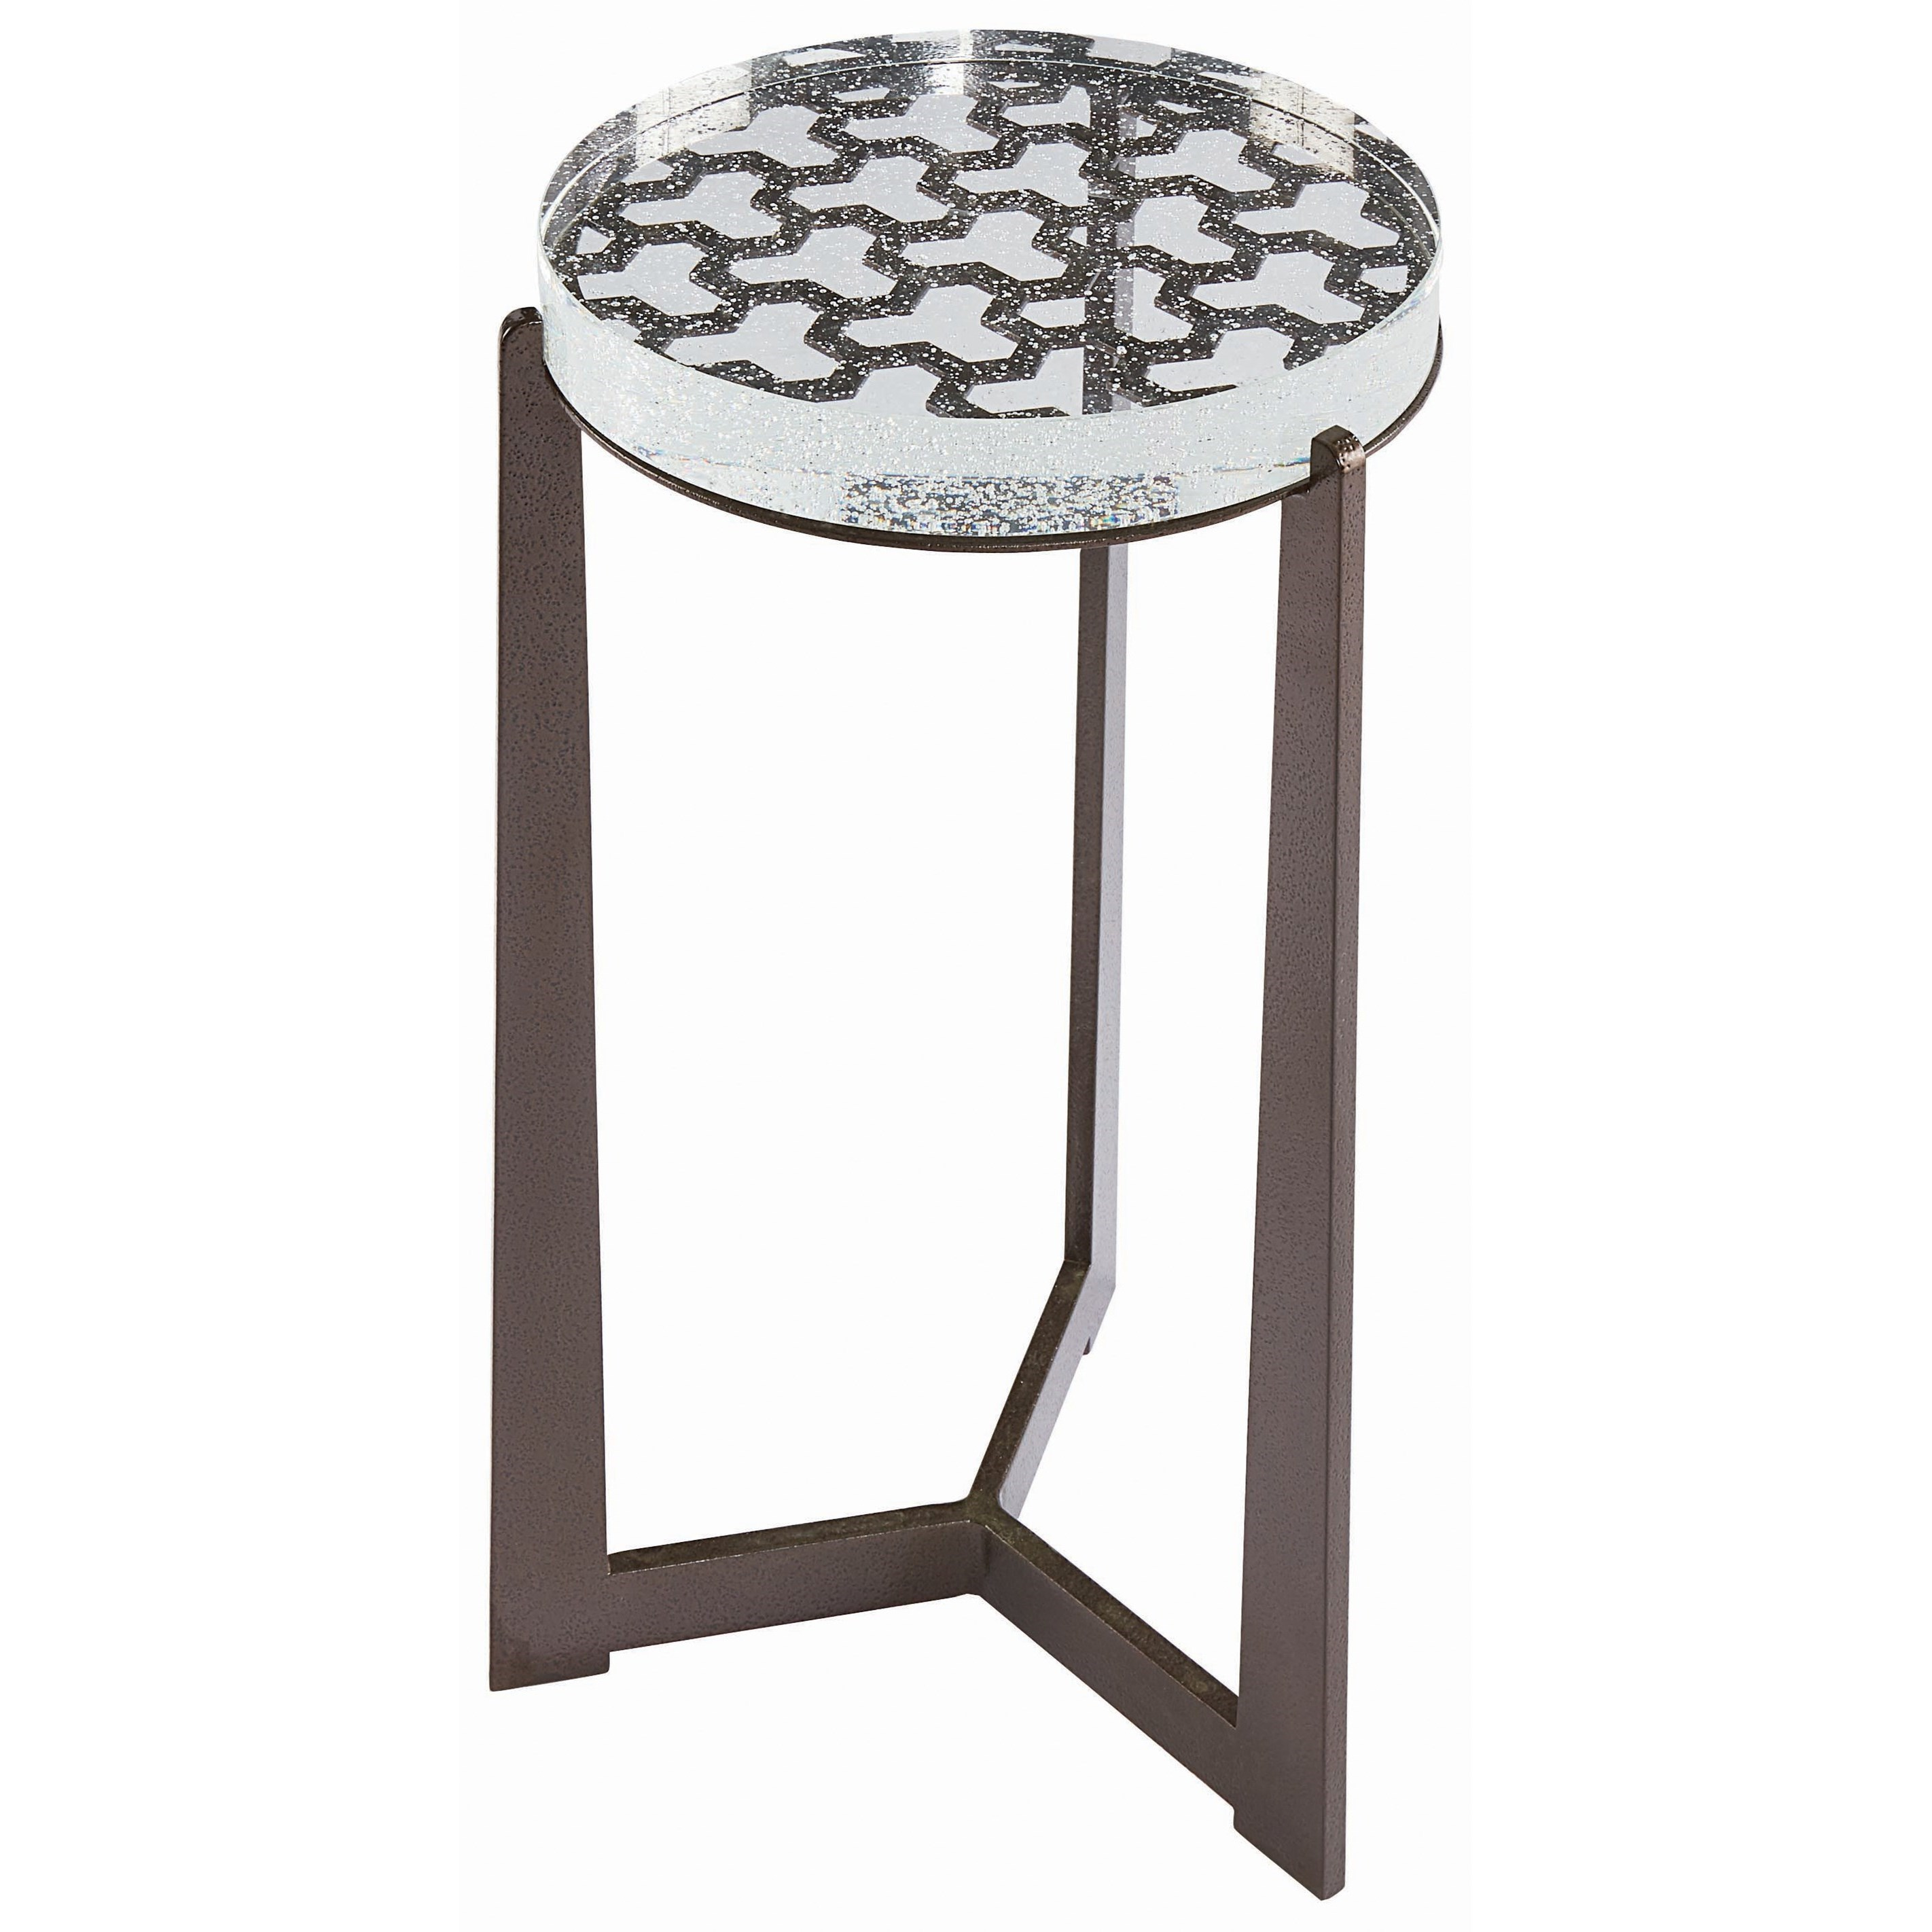 A.R.T. Furniture Inc Geode Crystal Spot Table - Item Number: 238363-0027